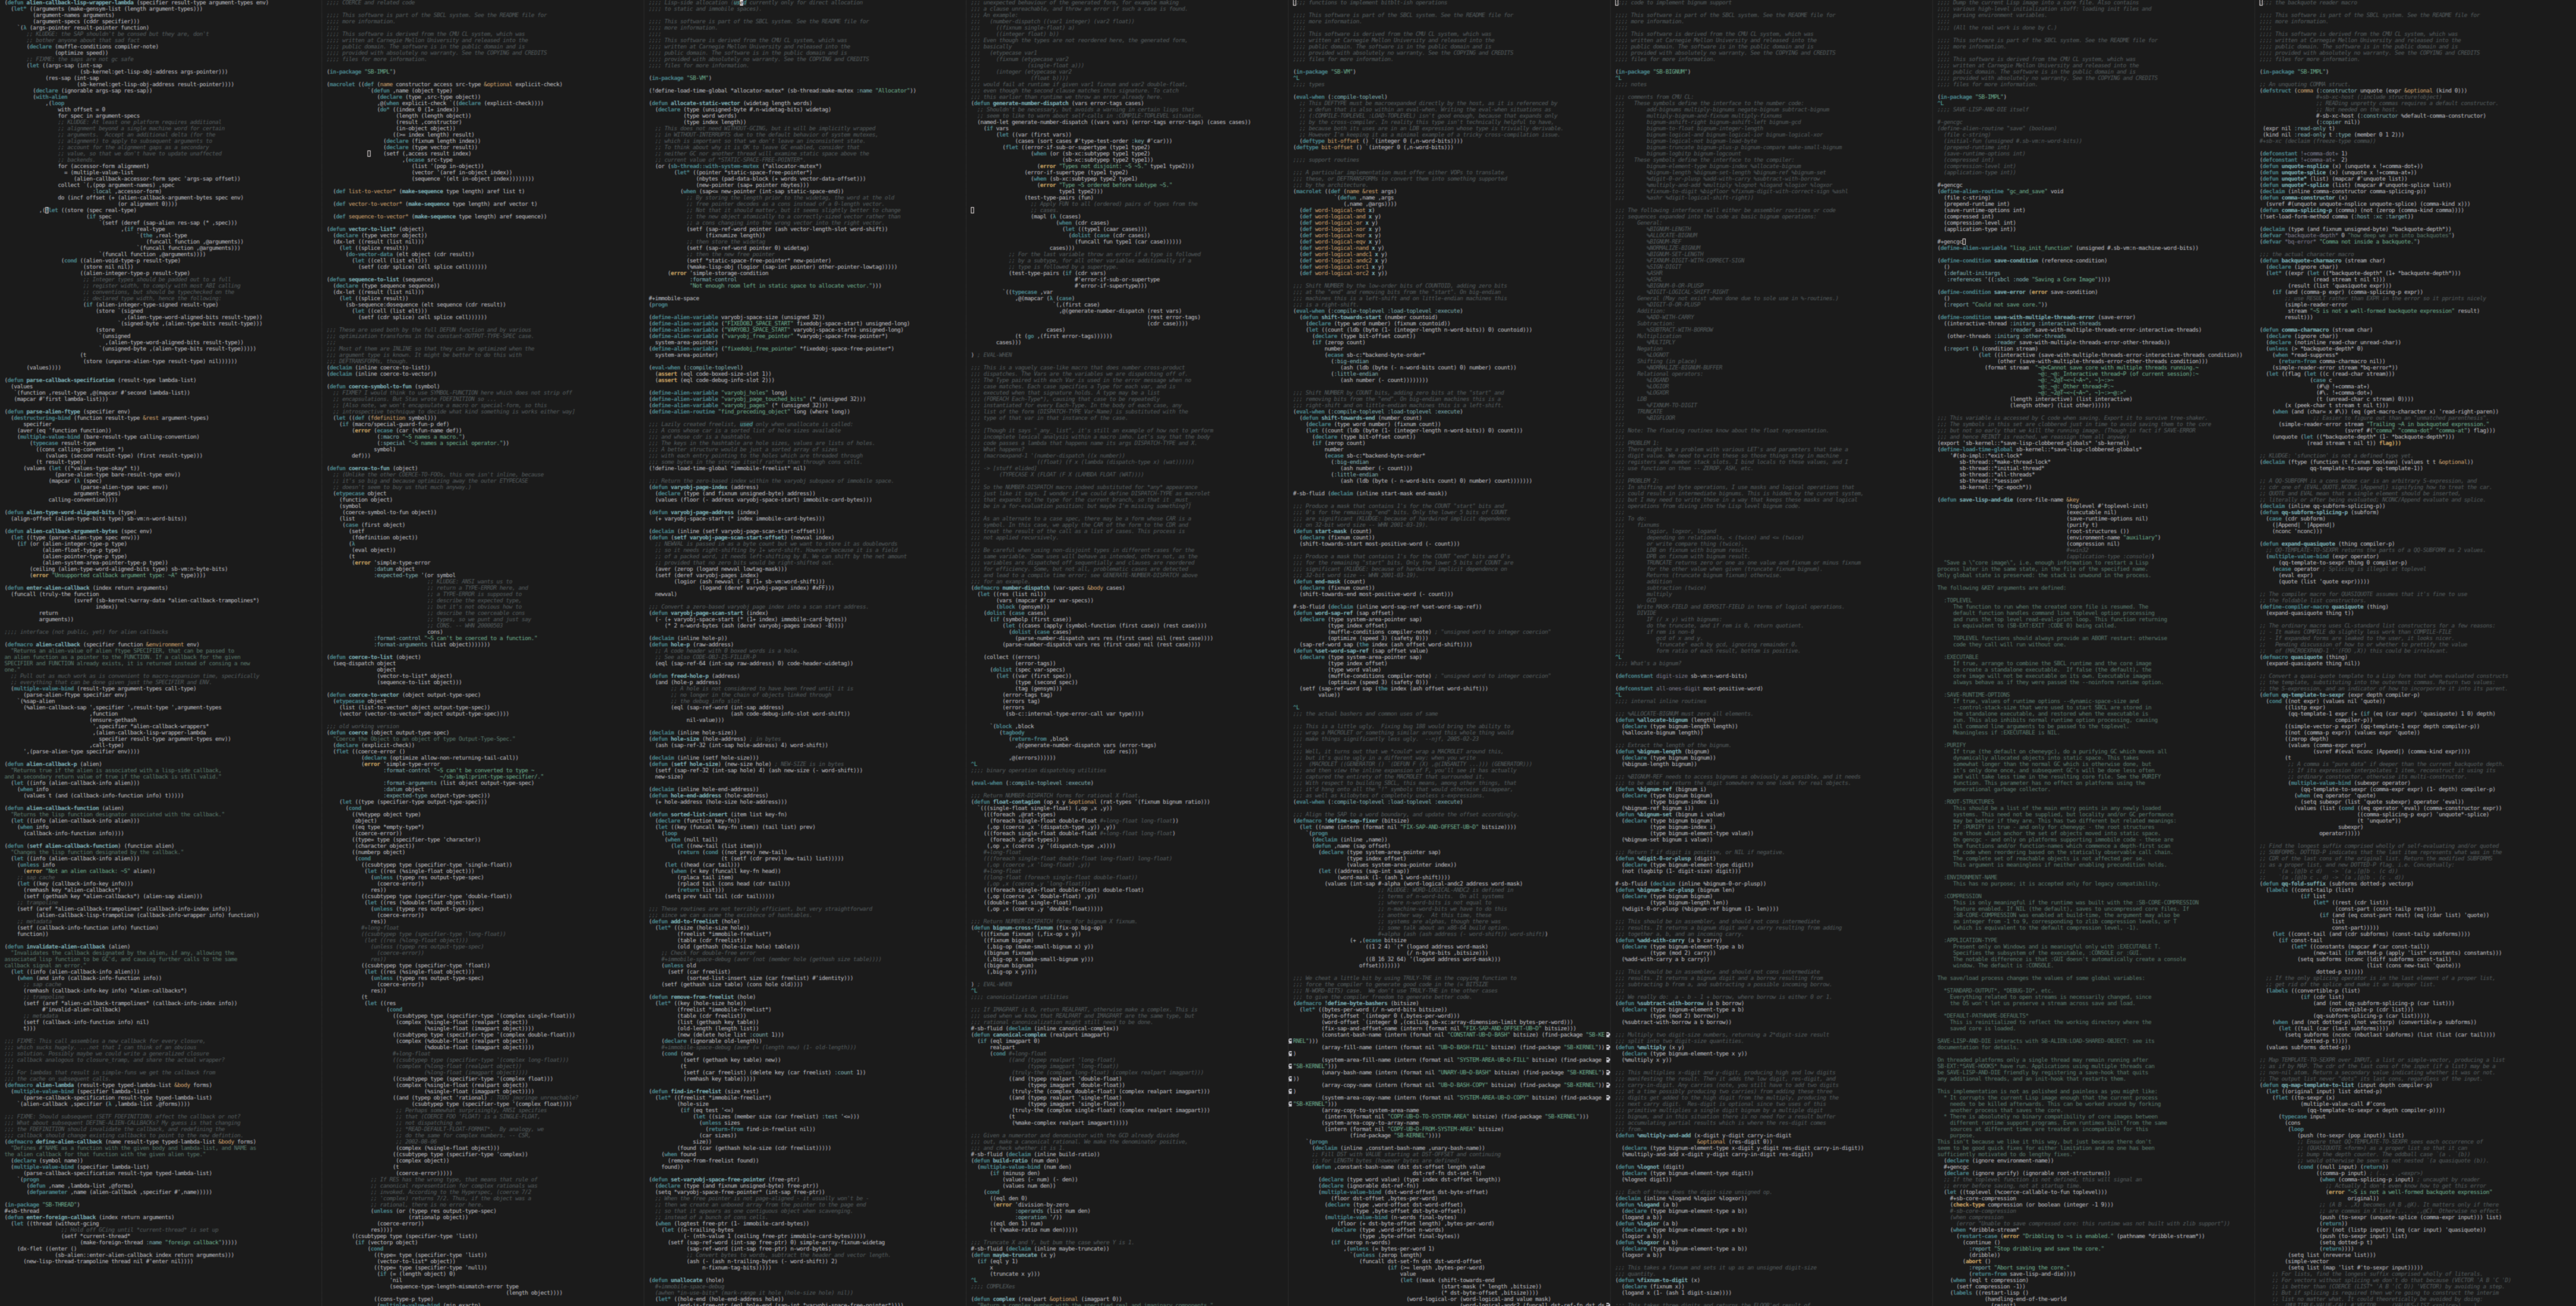 content/static/imgs/background2.png